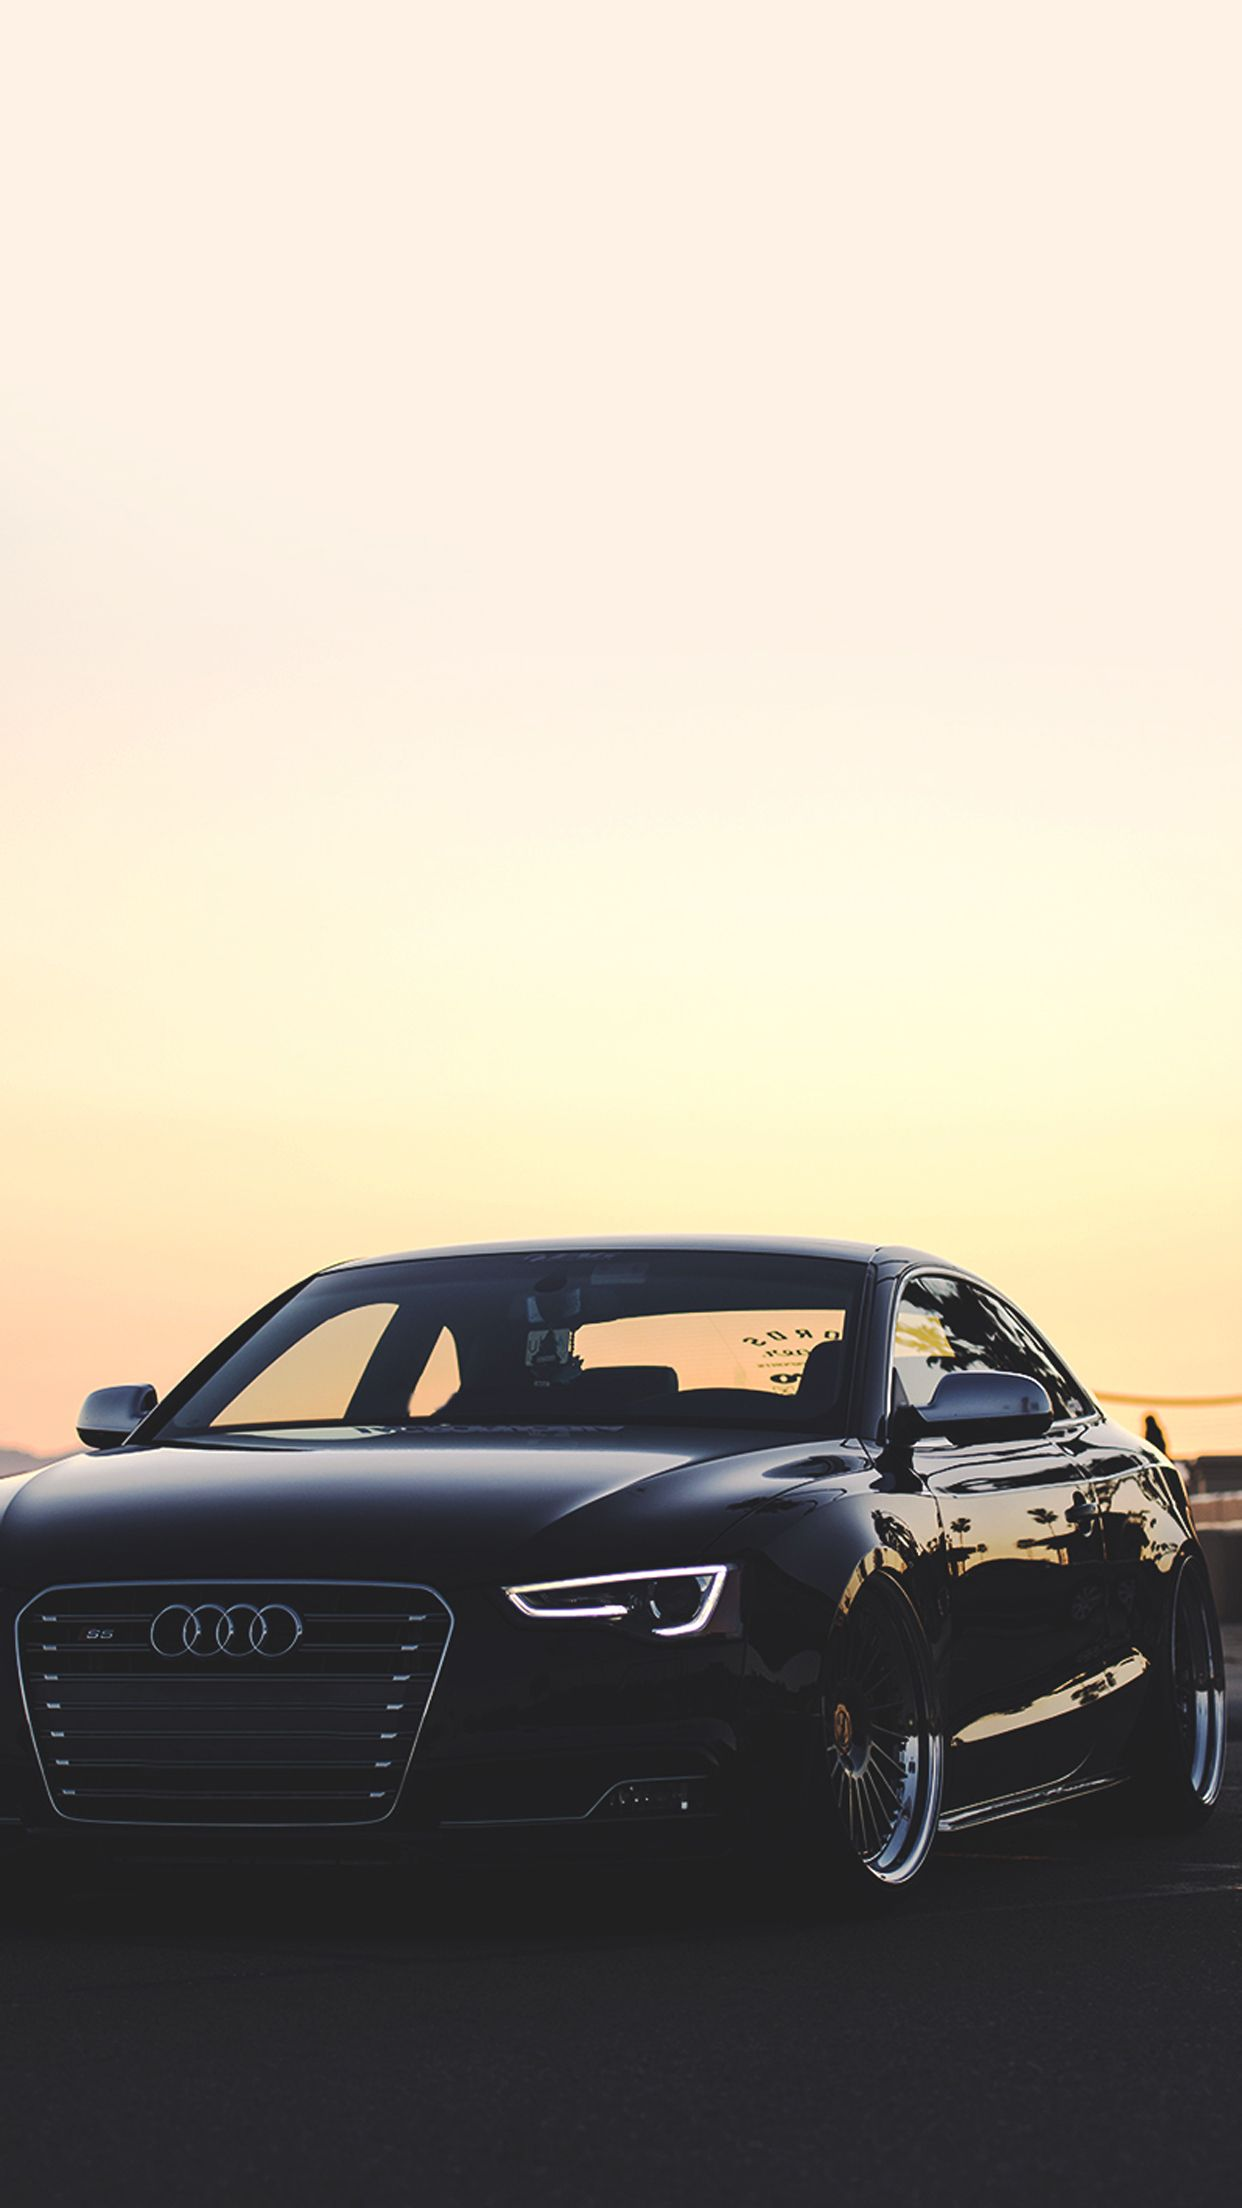 Iphone Luxury Cars Wallpaper Audi R8 Black Front The Black List